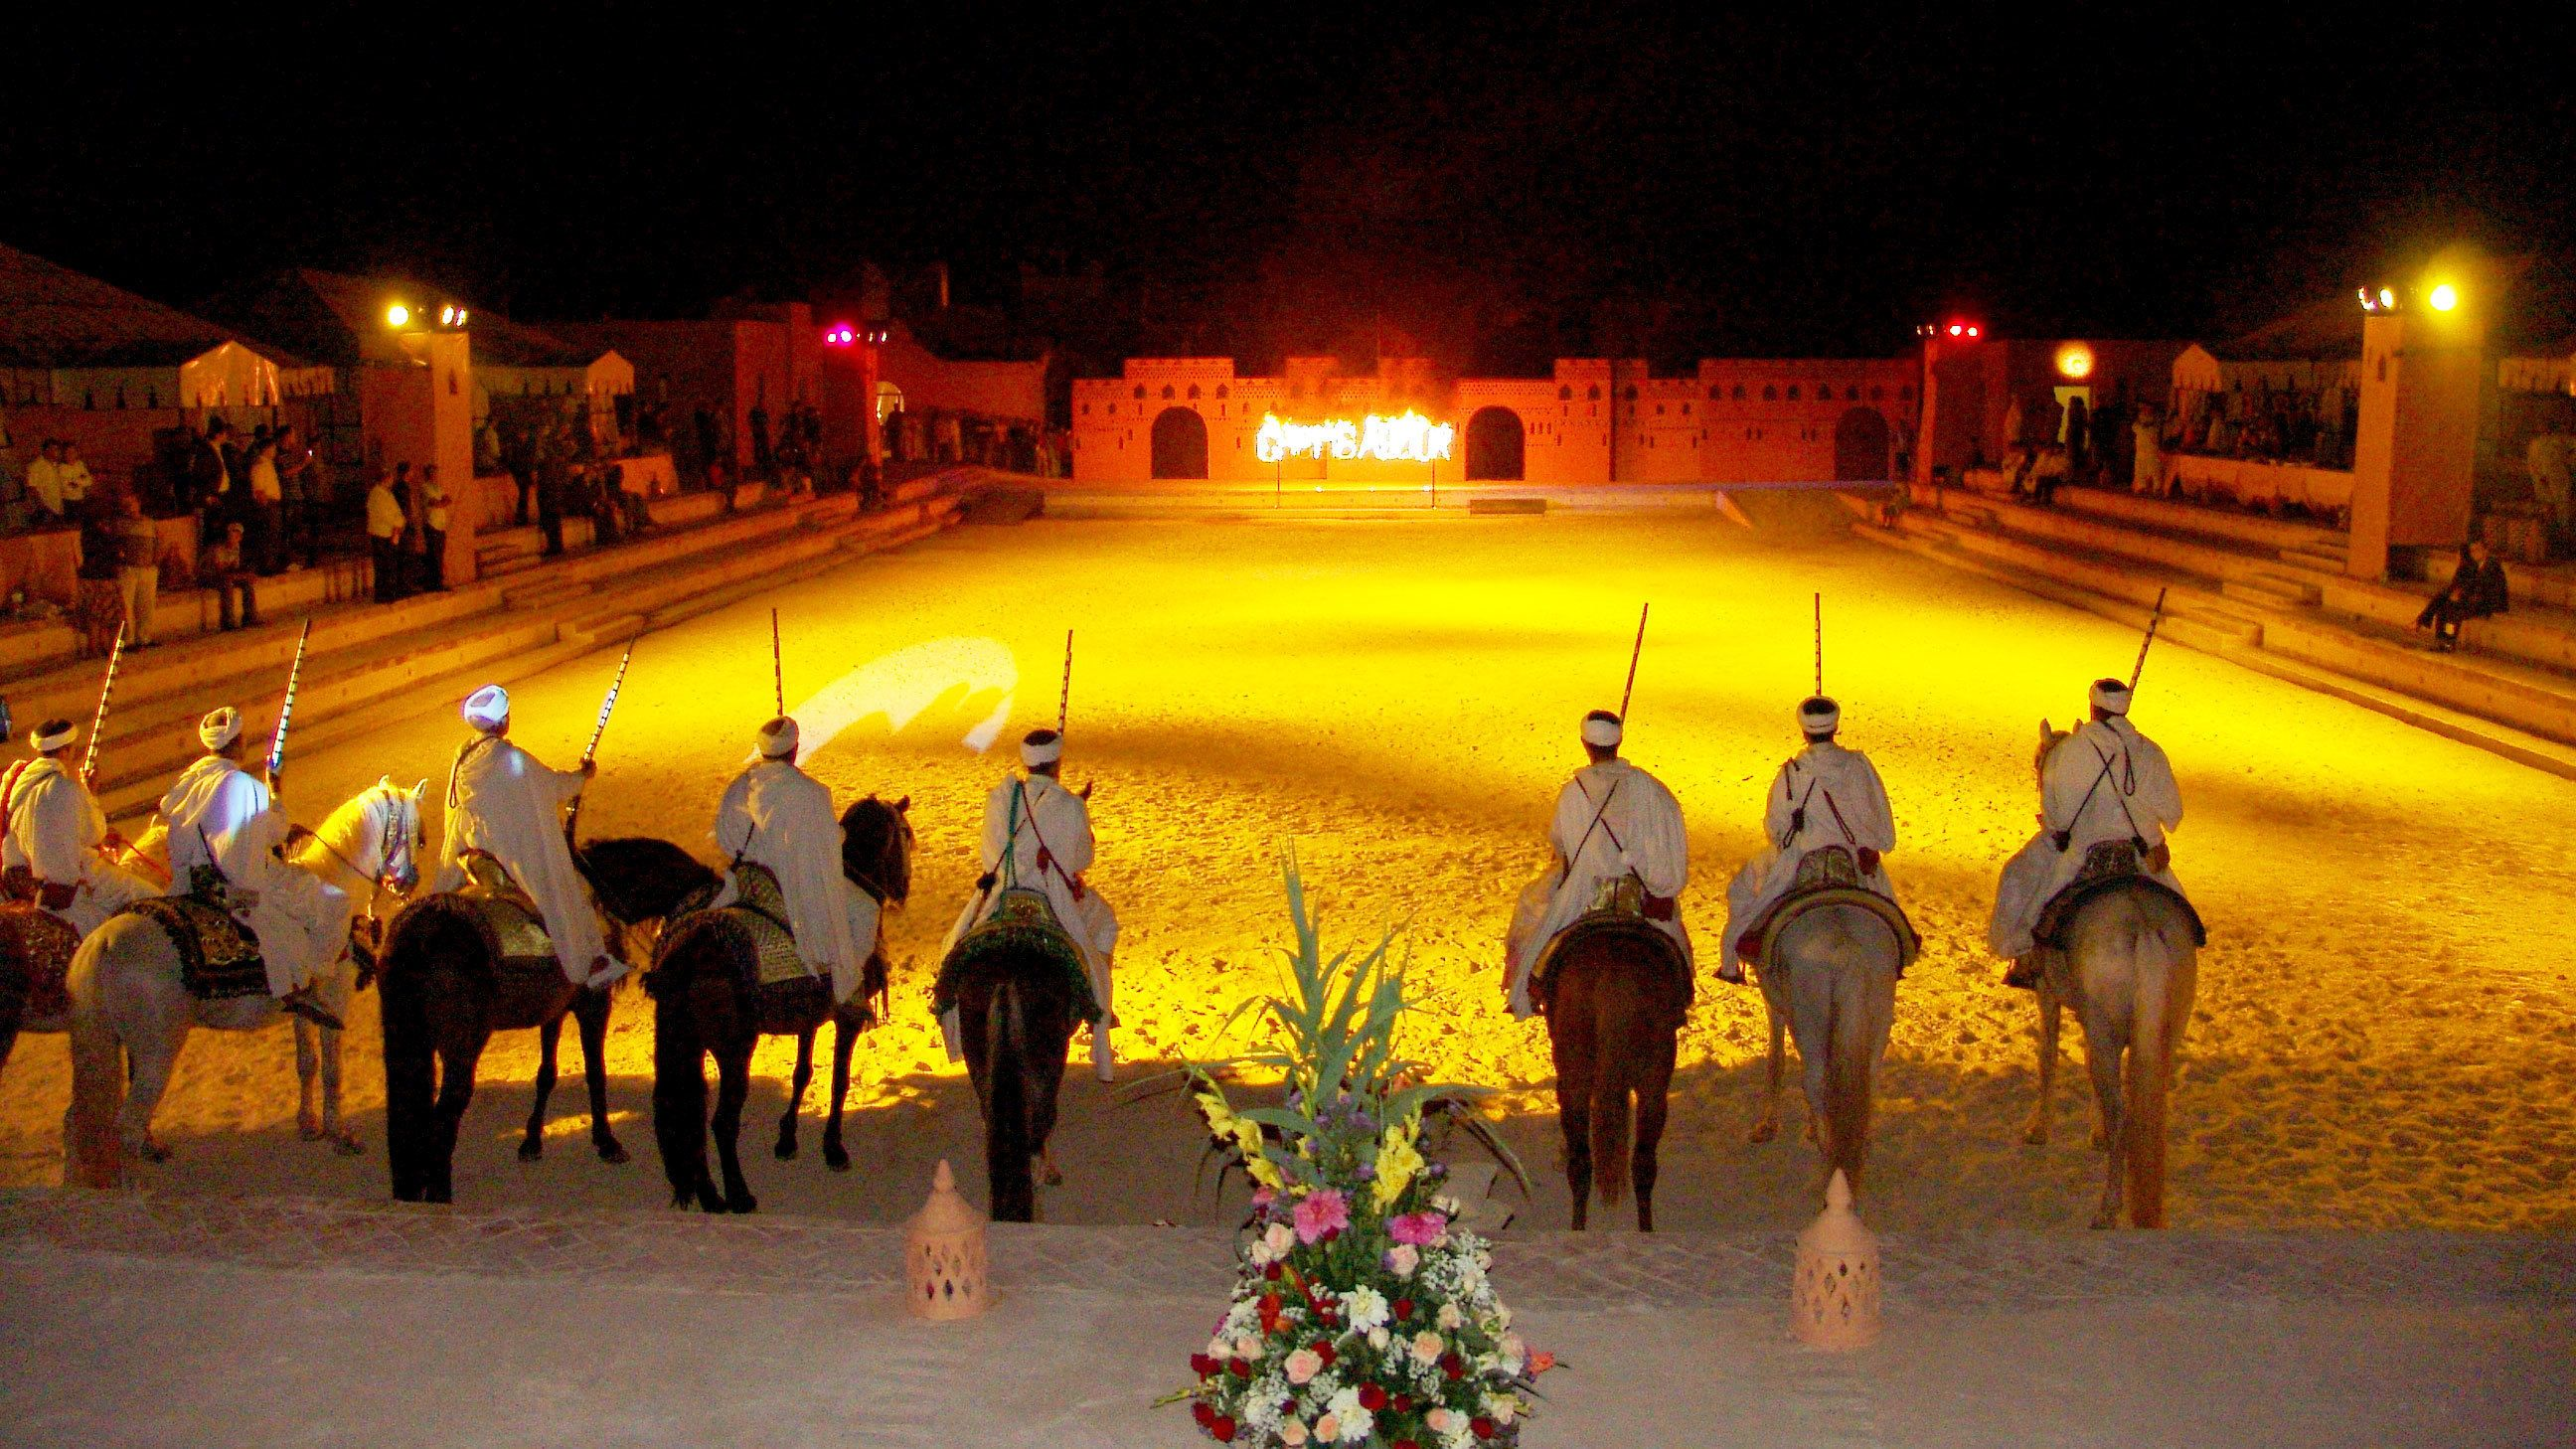 Stallion riding performers during a performance in Agadir